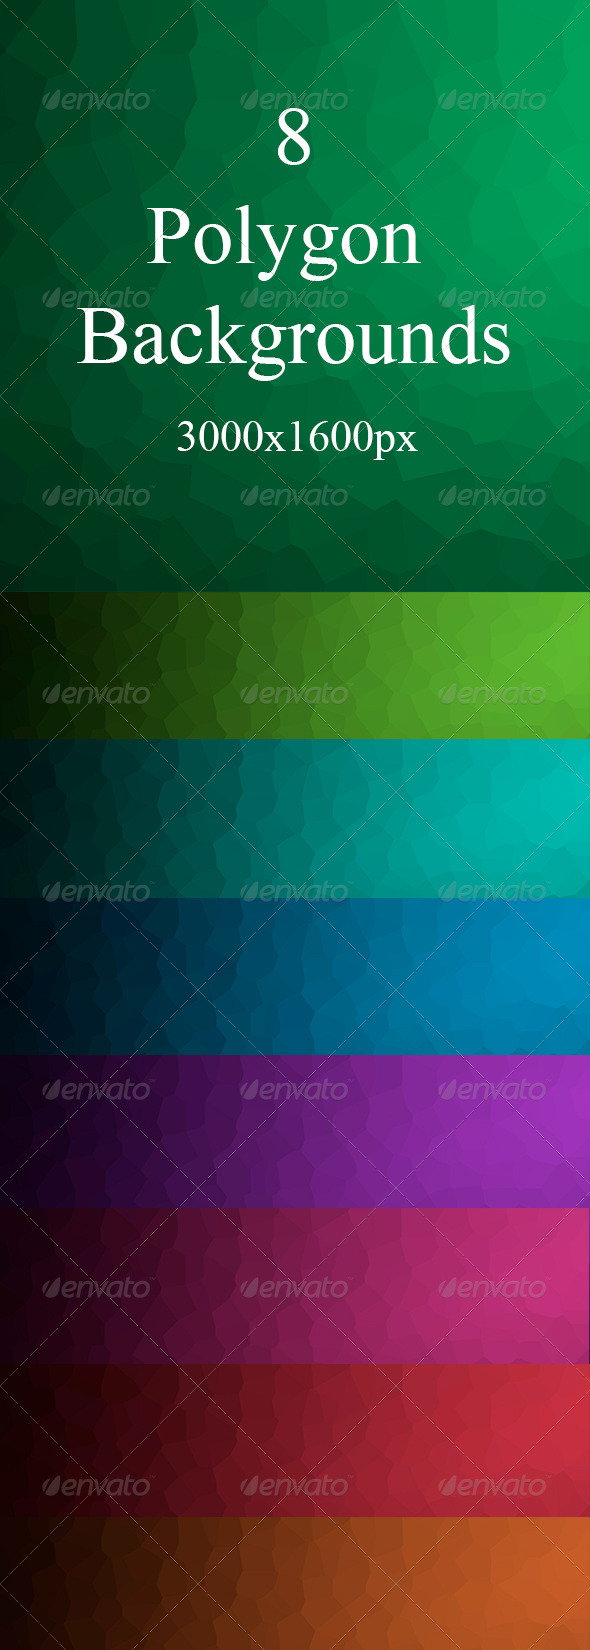 GraphicRiver Polygon Backgrounds 7658615